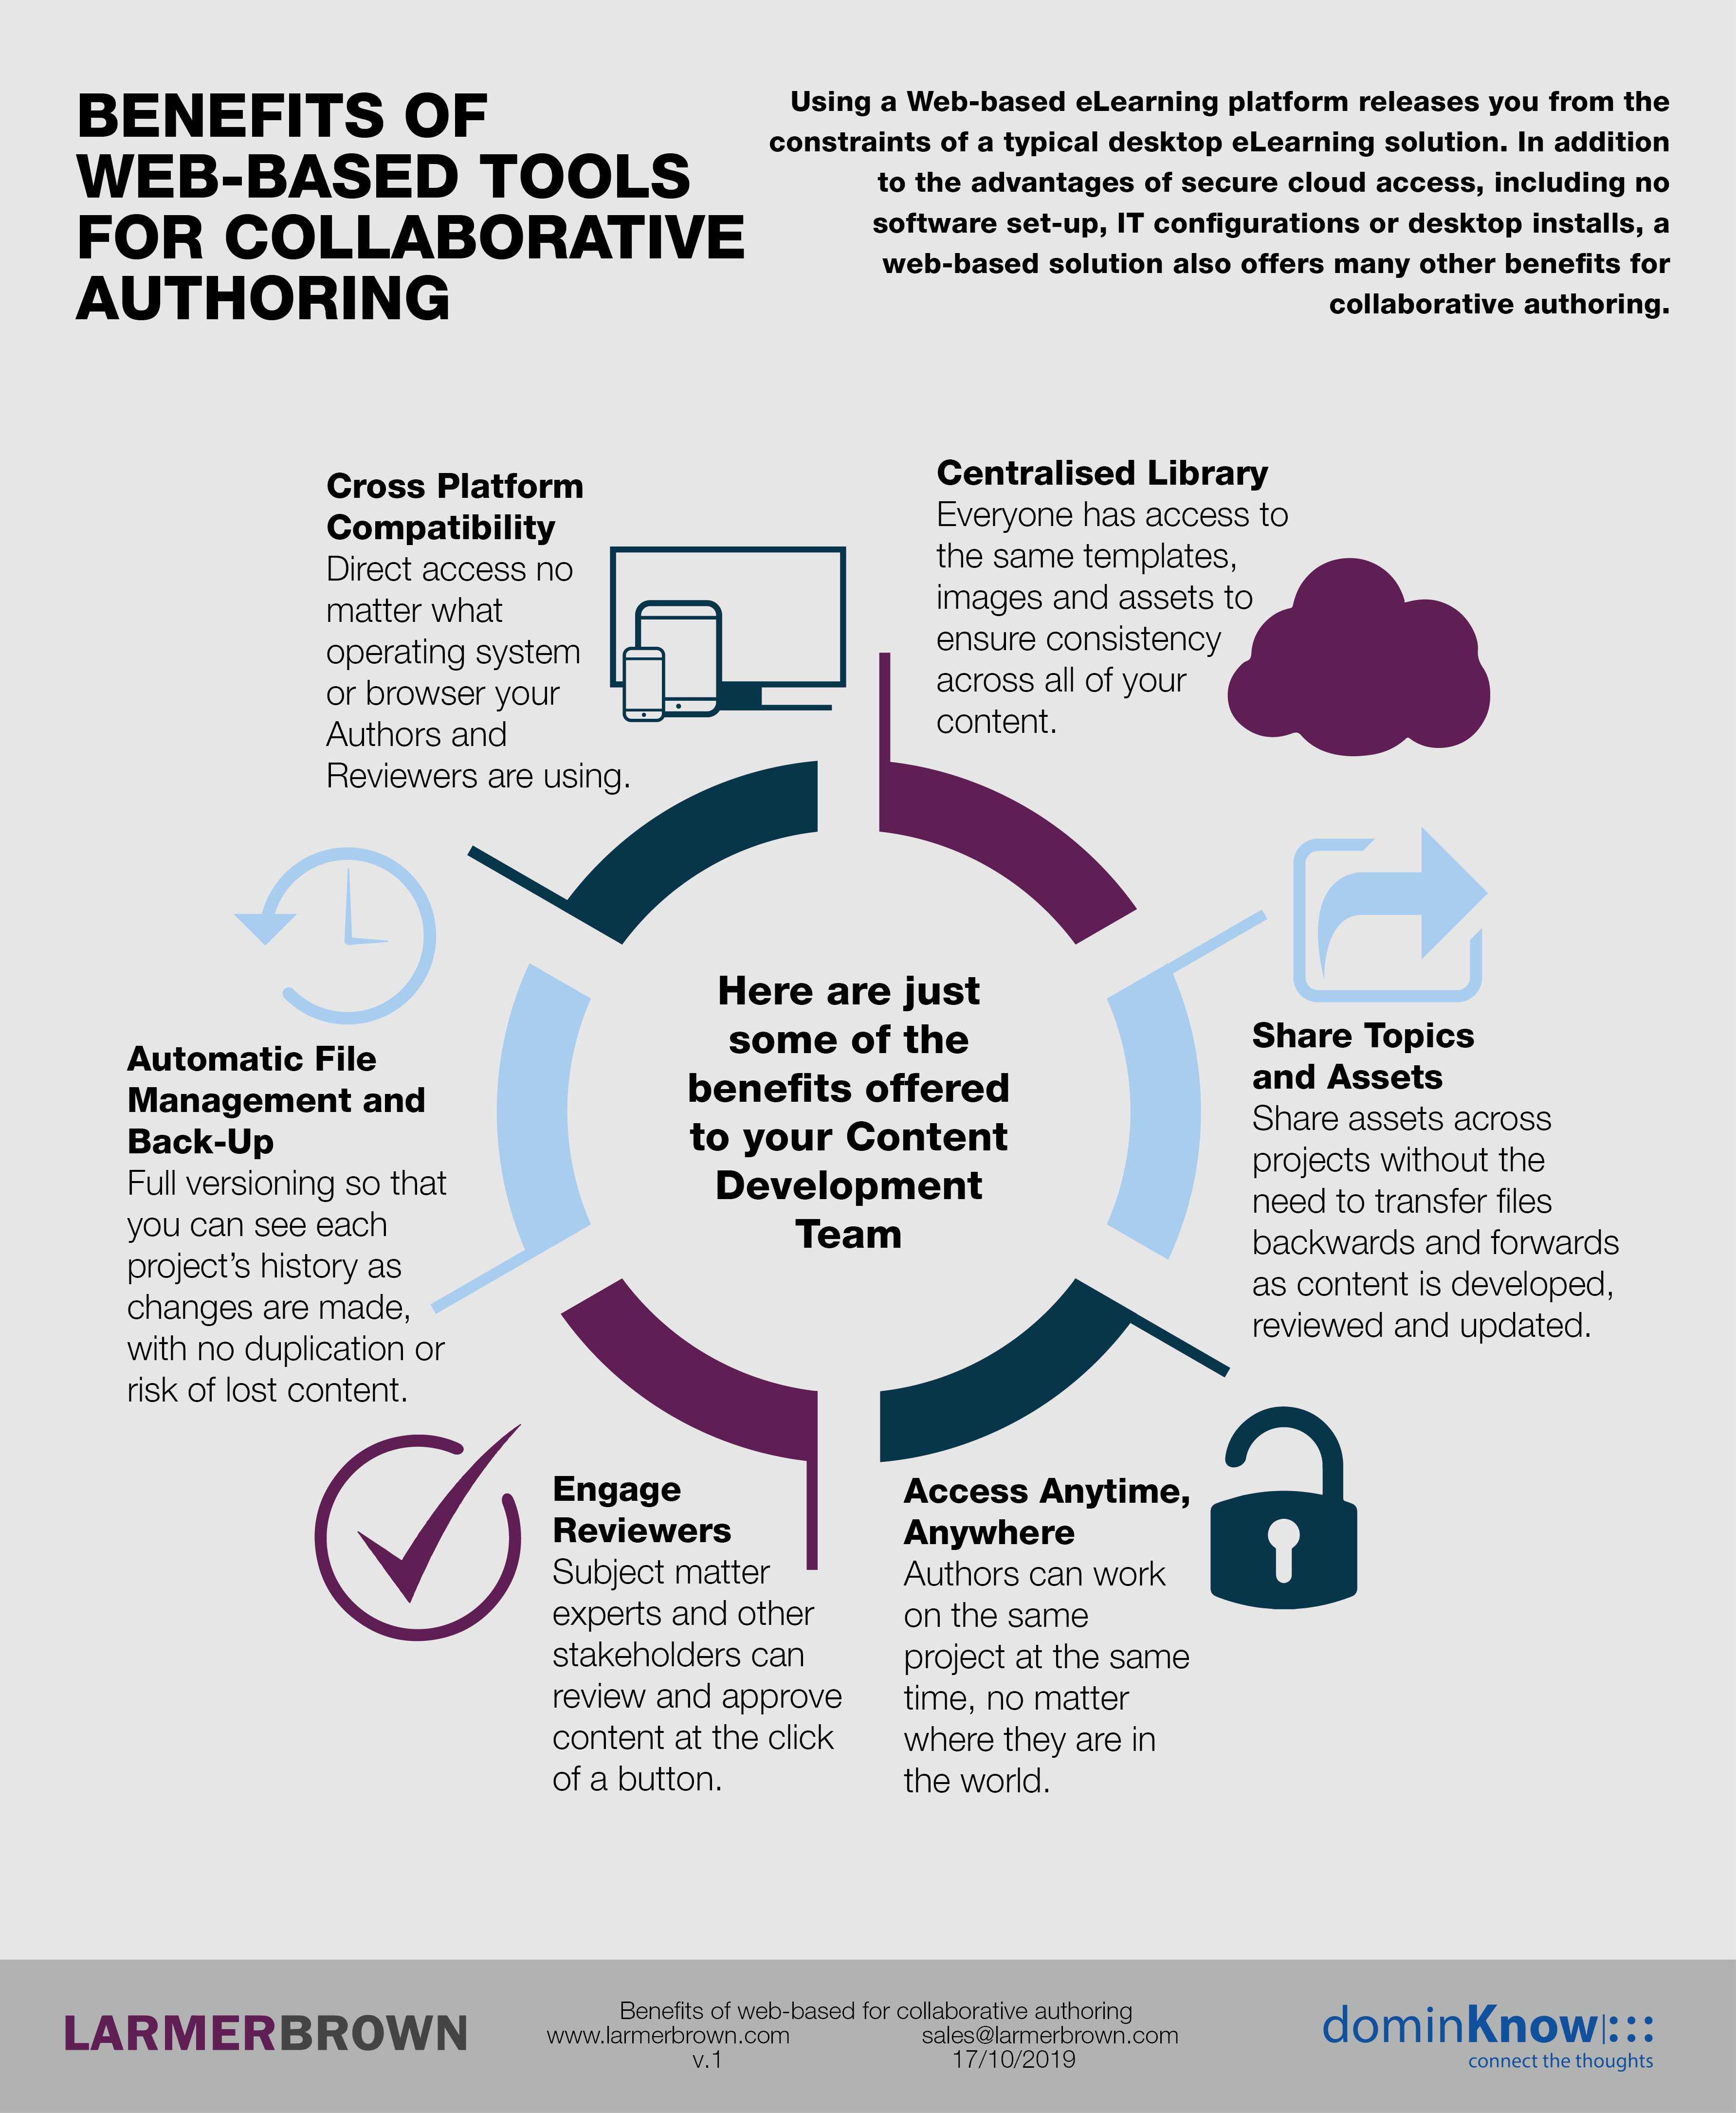 InfoGraphic Benefits of Web-Based Tools for Collaborative Authoring